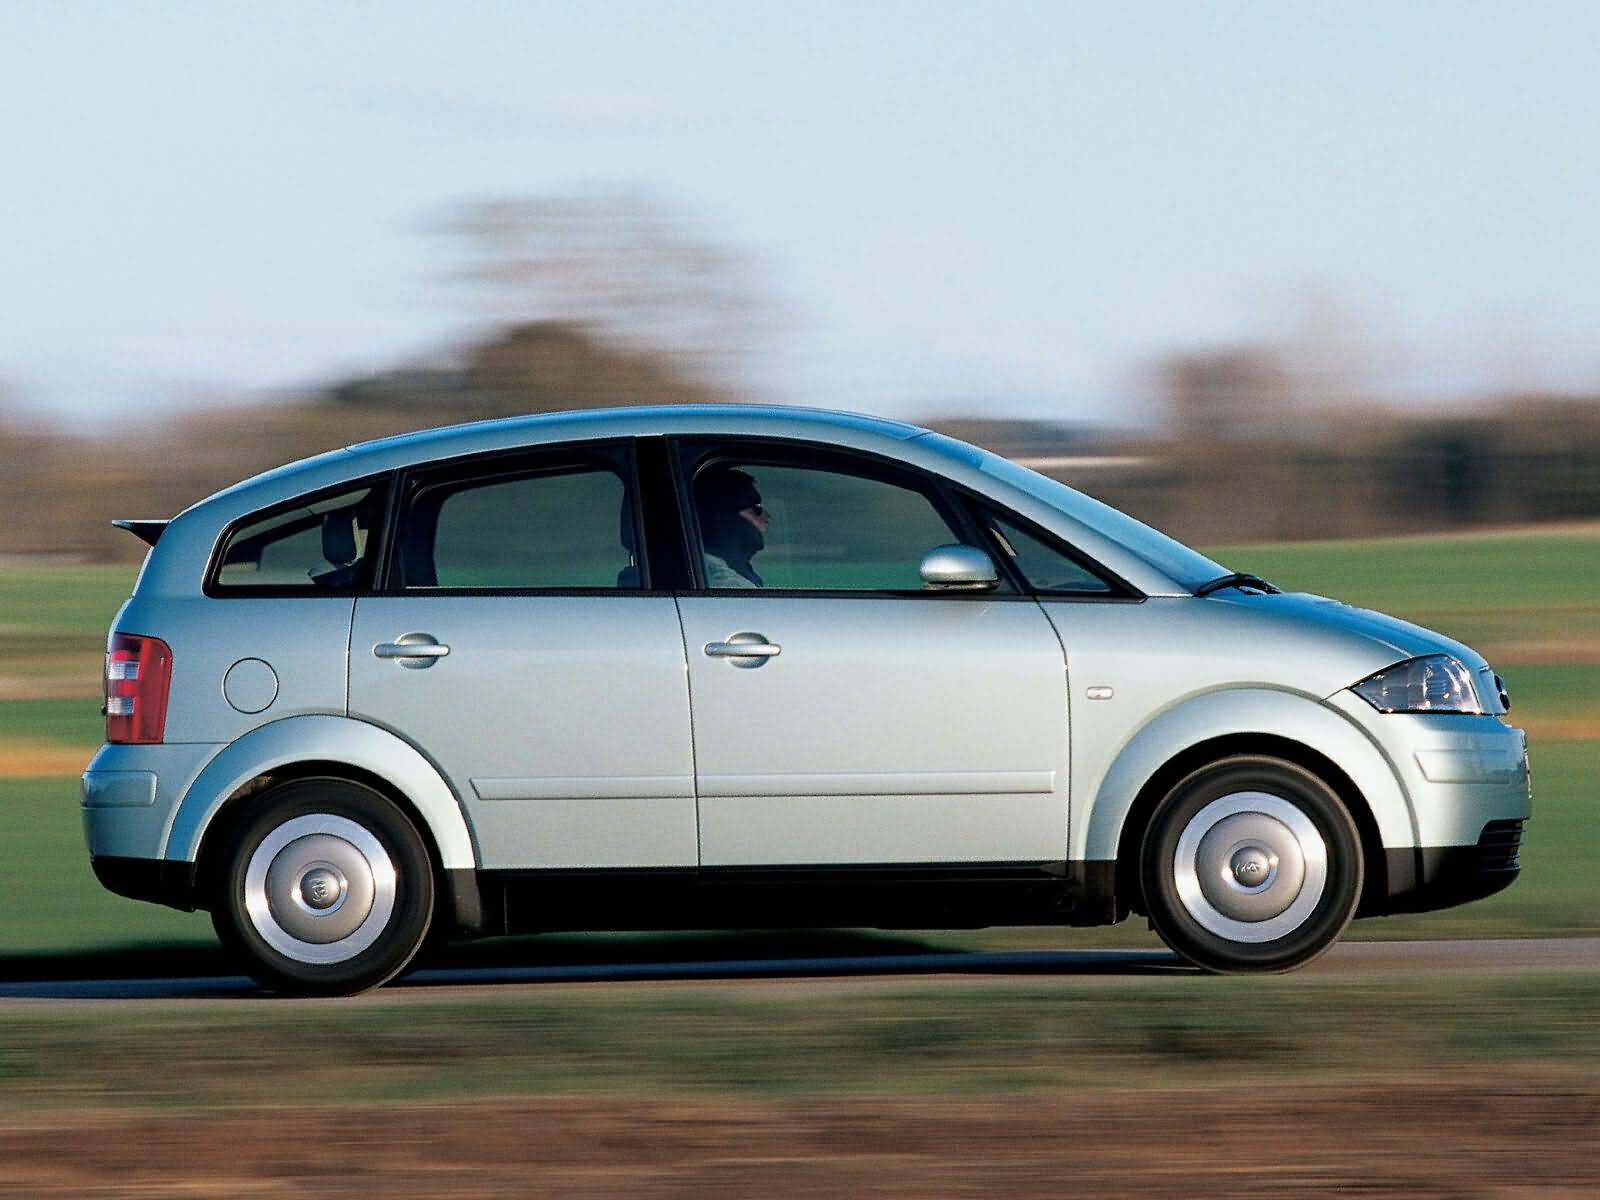 Right side view of beautful silver Audi A2 Car